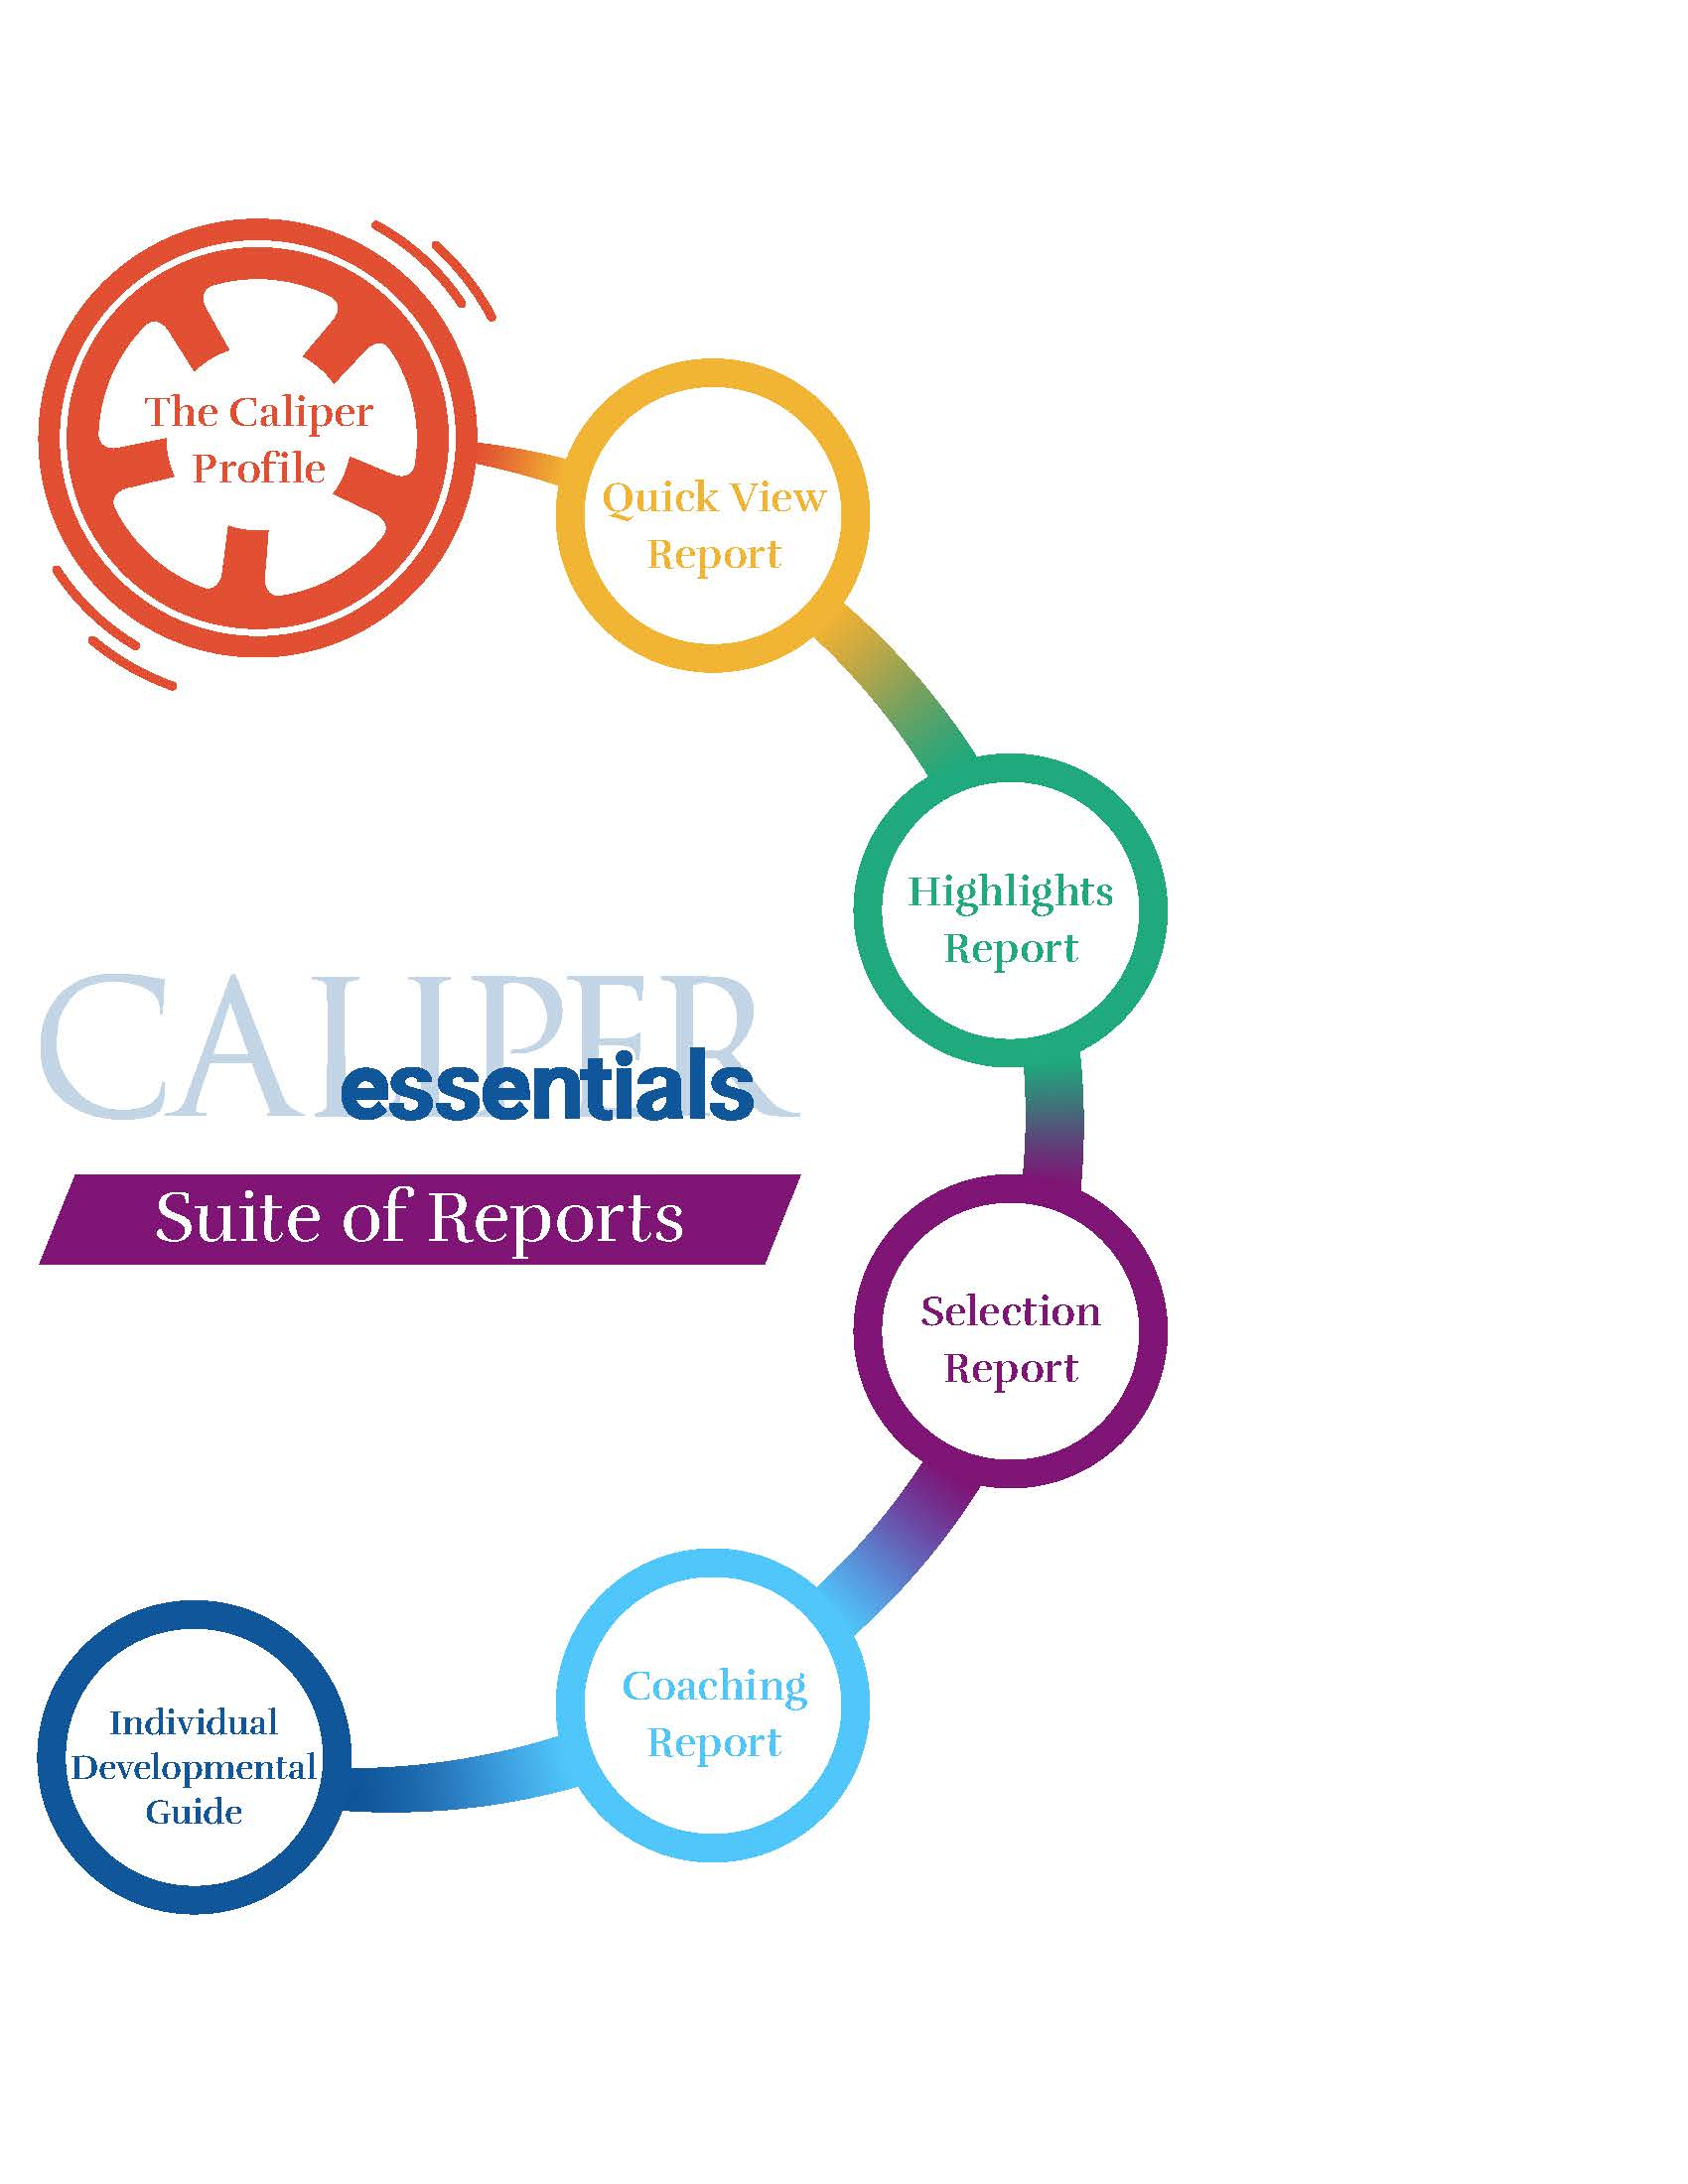 Caliper_Essentials_Suite_of_Reports_Visual Only